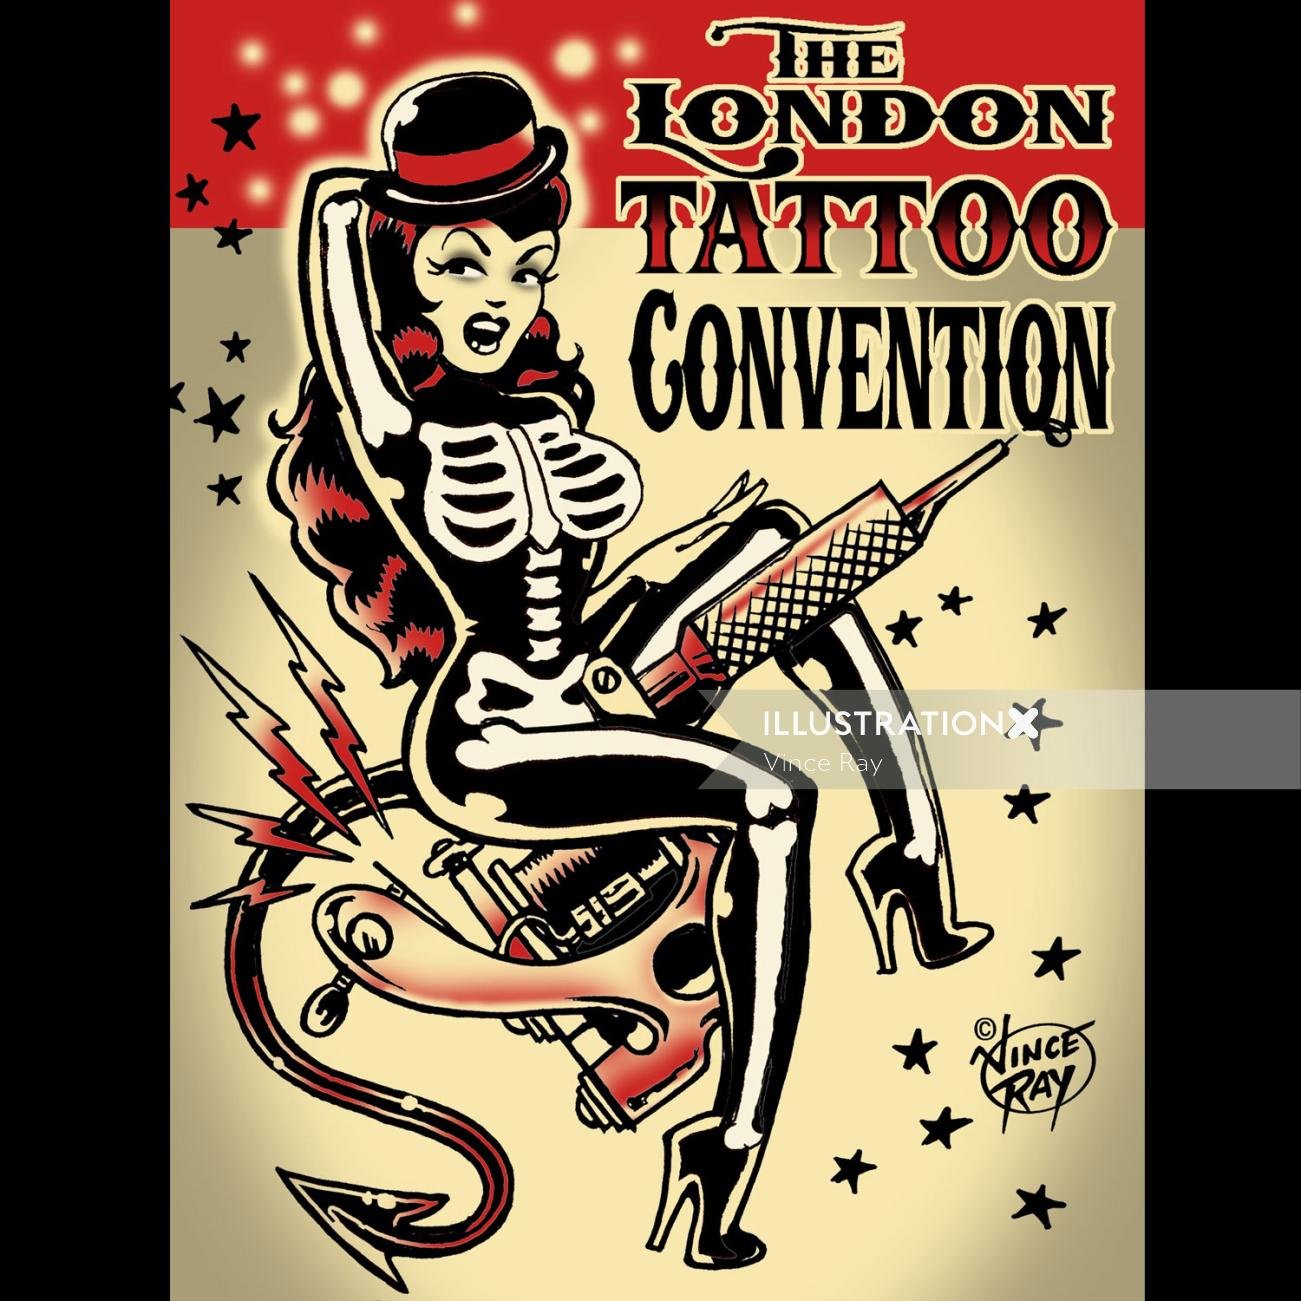 Tattoo - Low brow art collection